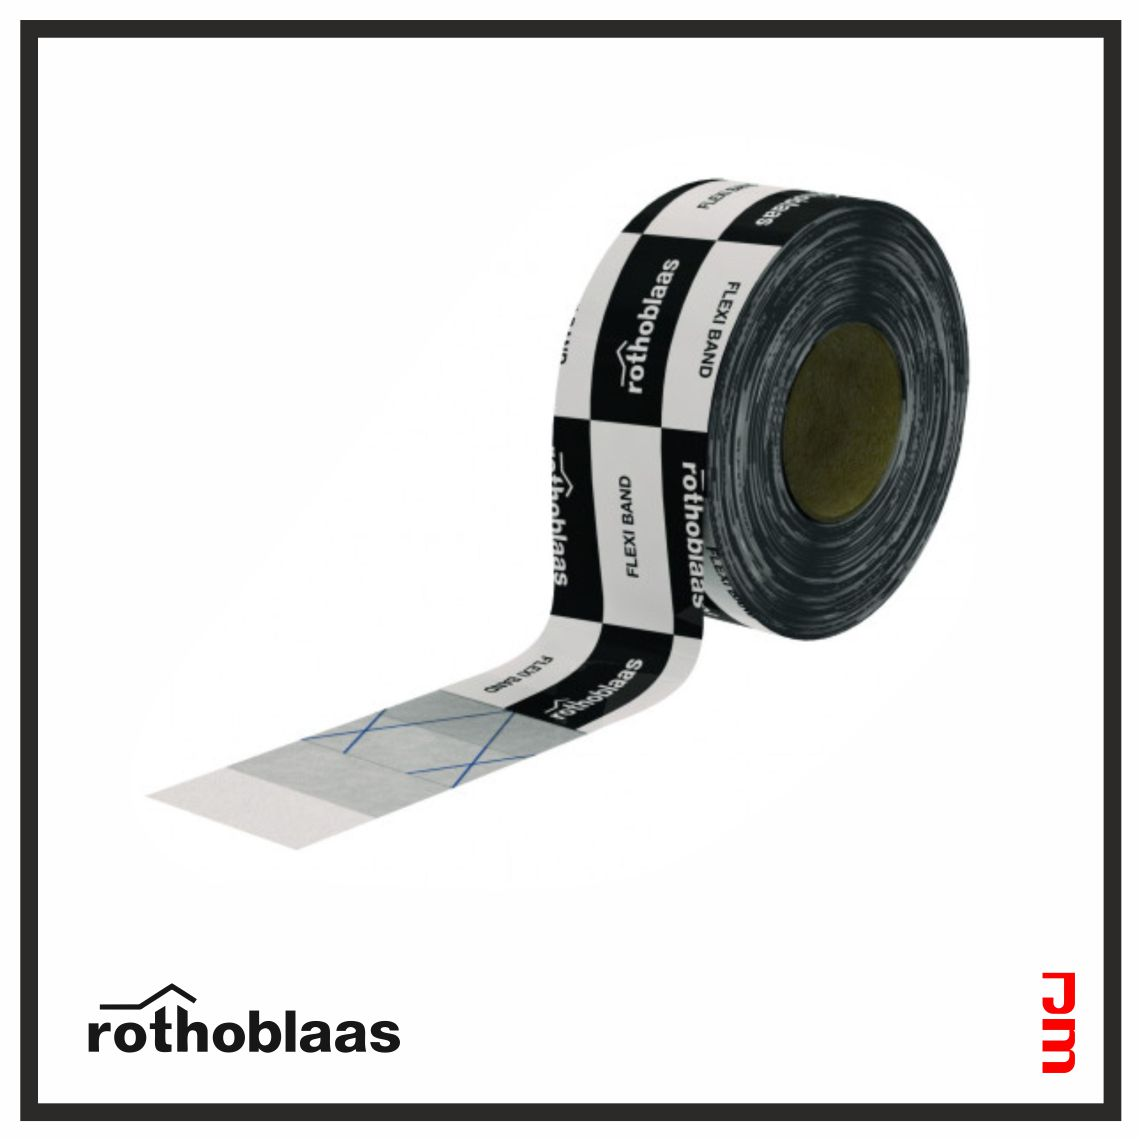 ROTHOBLAAS FLEXI BAND